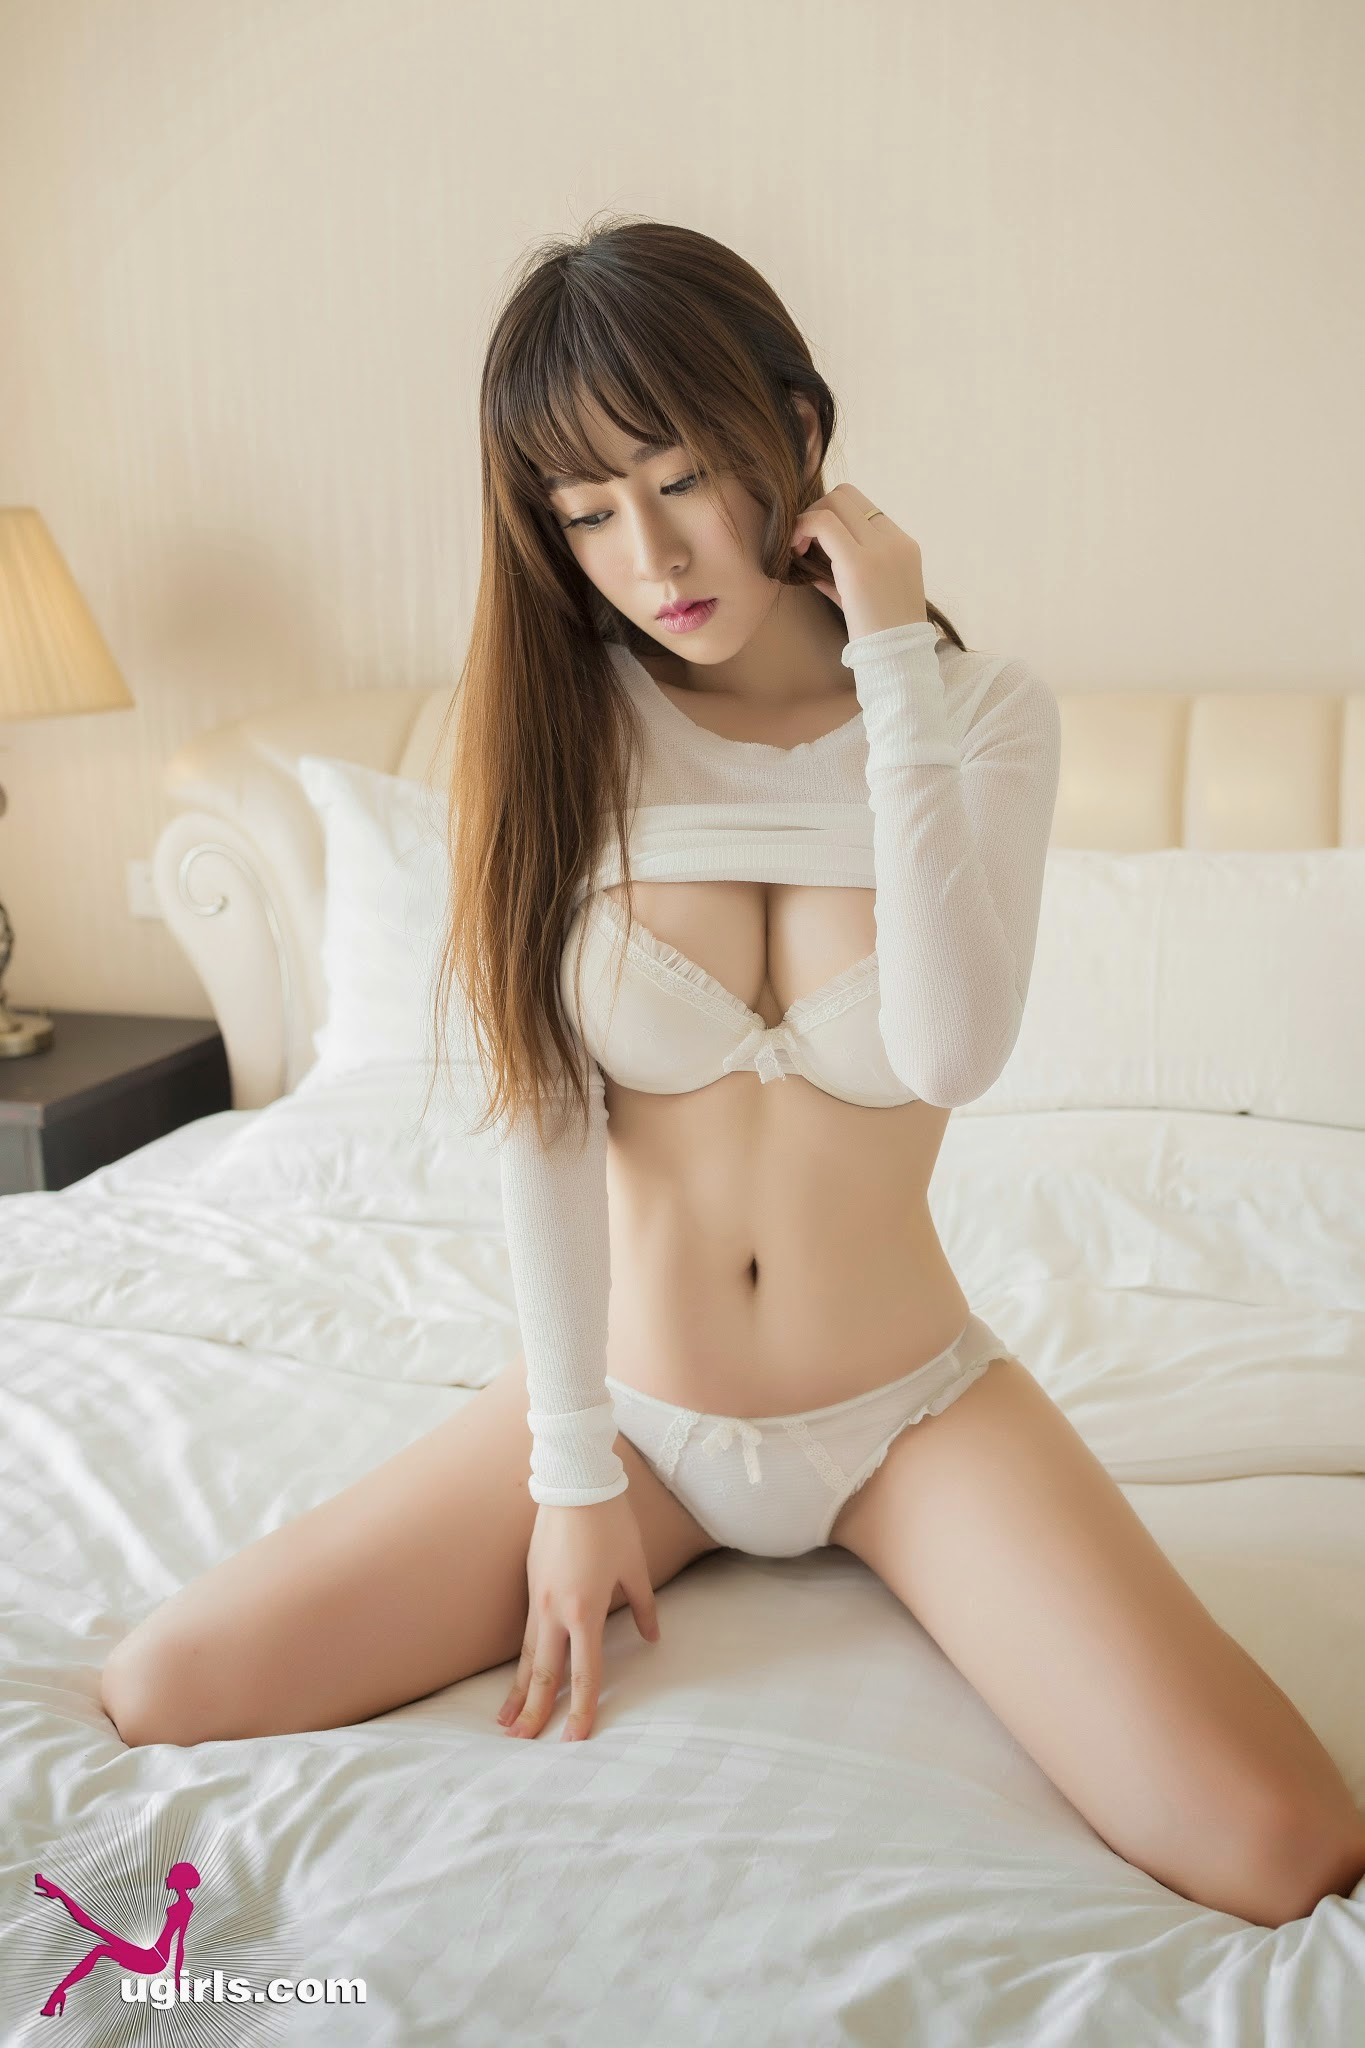 Wang Yu Chun 王语纯 [ugirls尤果] Original Nude Gallery ...